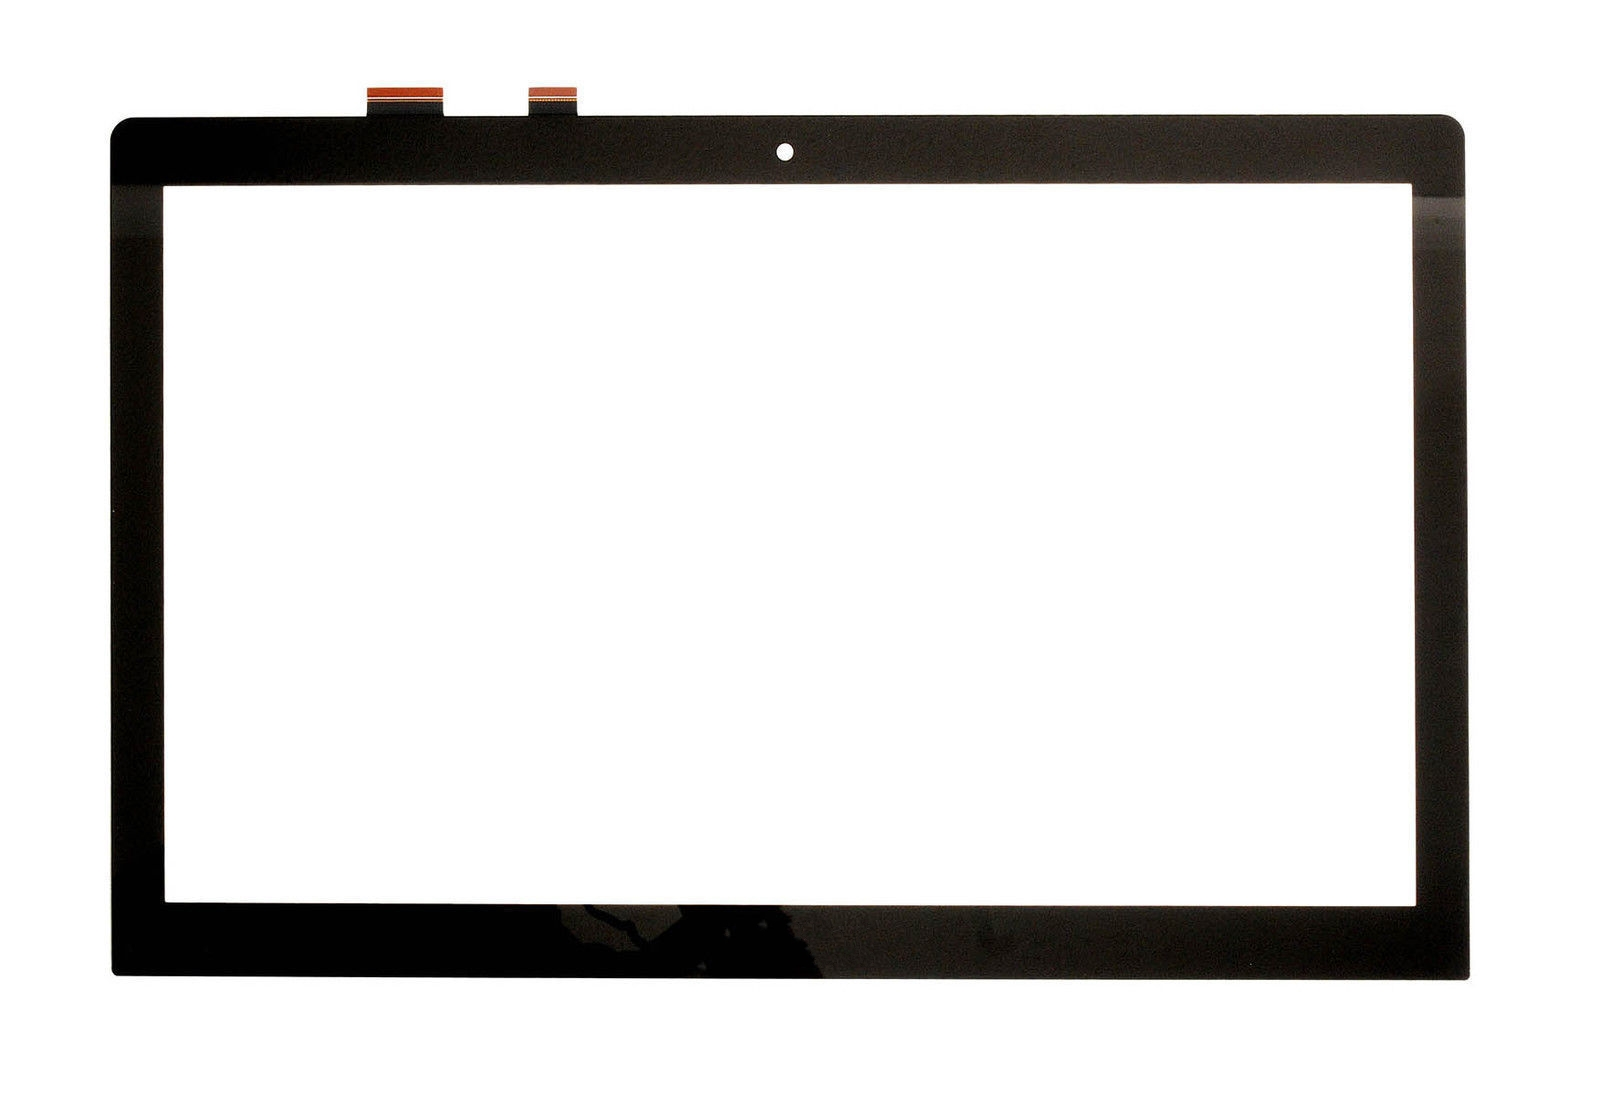 For Asus VivoBook S550 S550C S550CA S550CB S550CM Touch Screen Touch Panel Digitizer Glass Lens Repair Parts Replacement